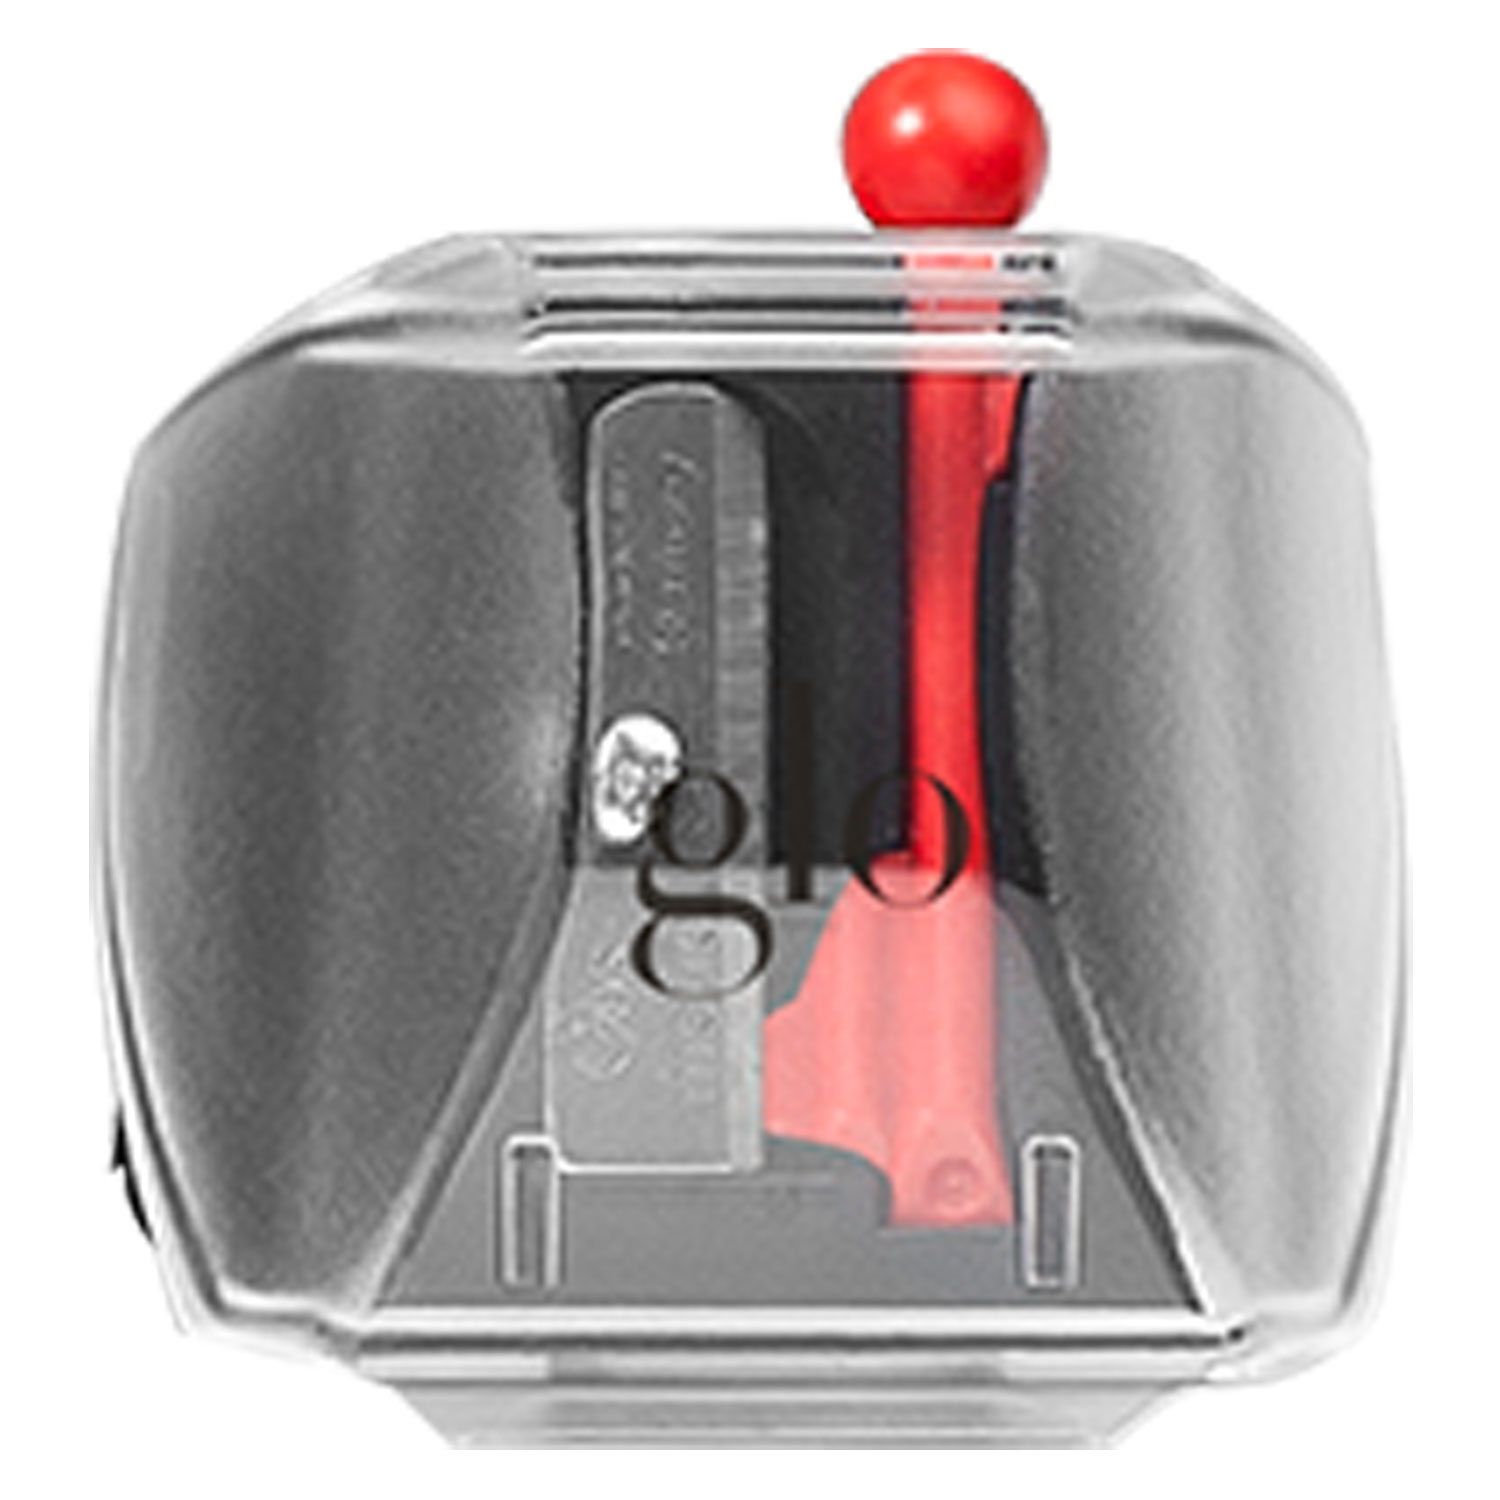 Glo Skin Beauty Tools - Pencil Sharpener